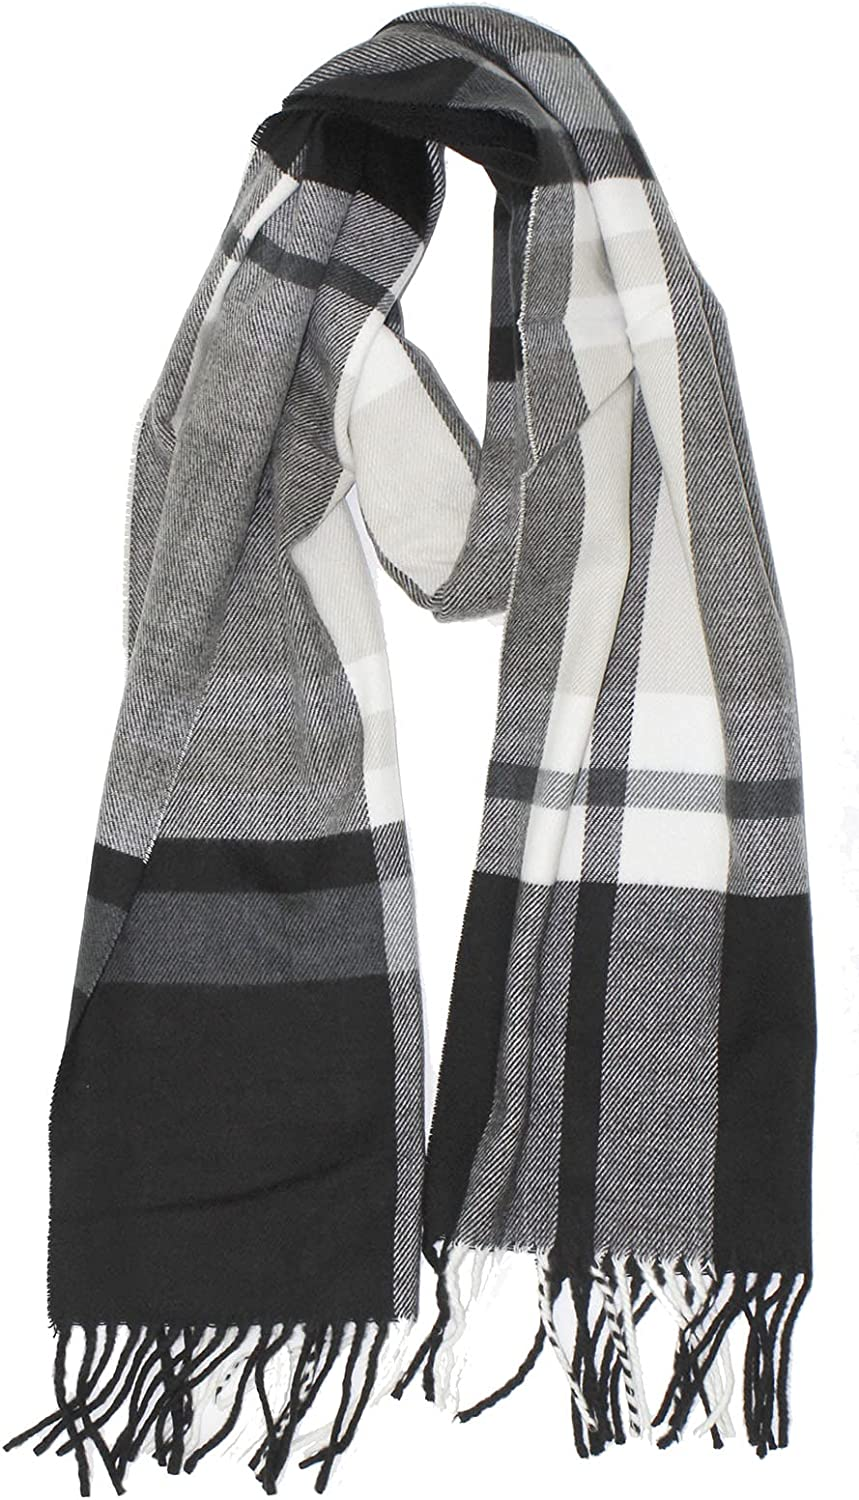 New Soft Cashmere Feel Plaid Check and Solid Winter Scarf